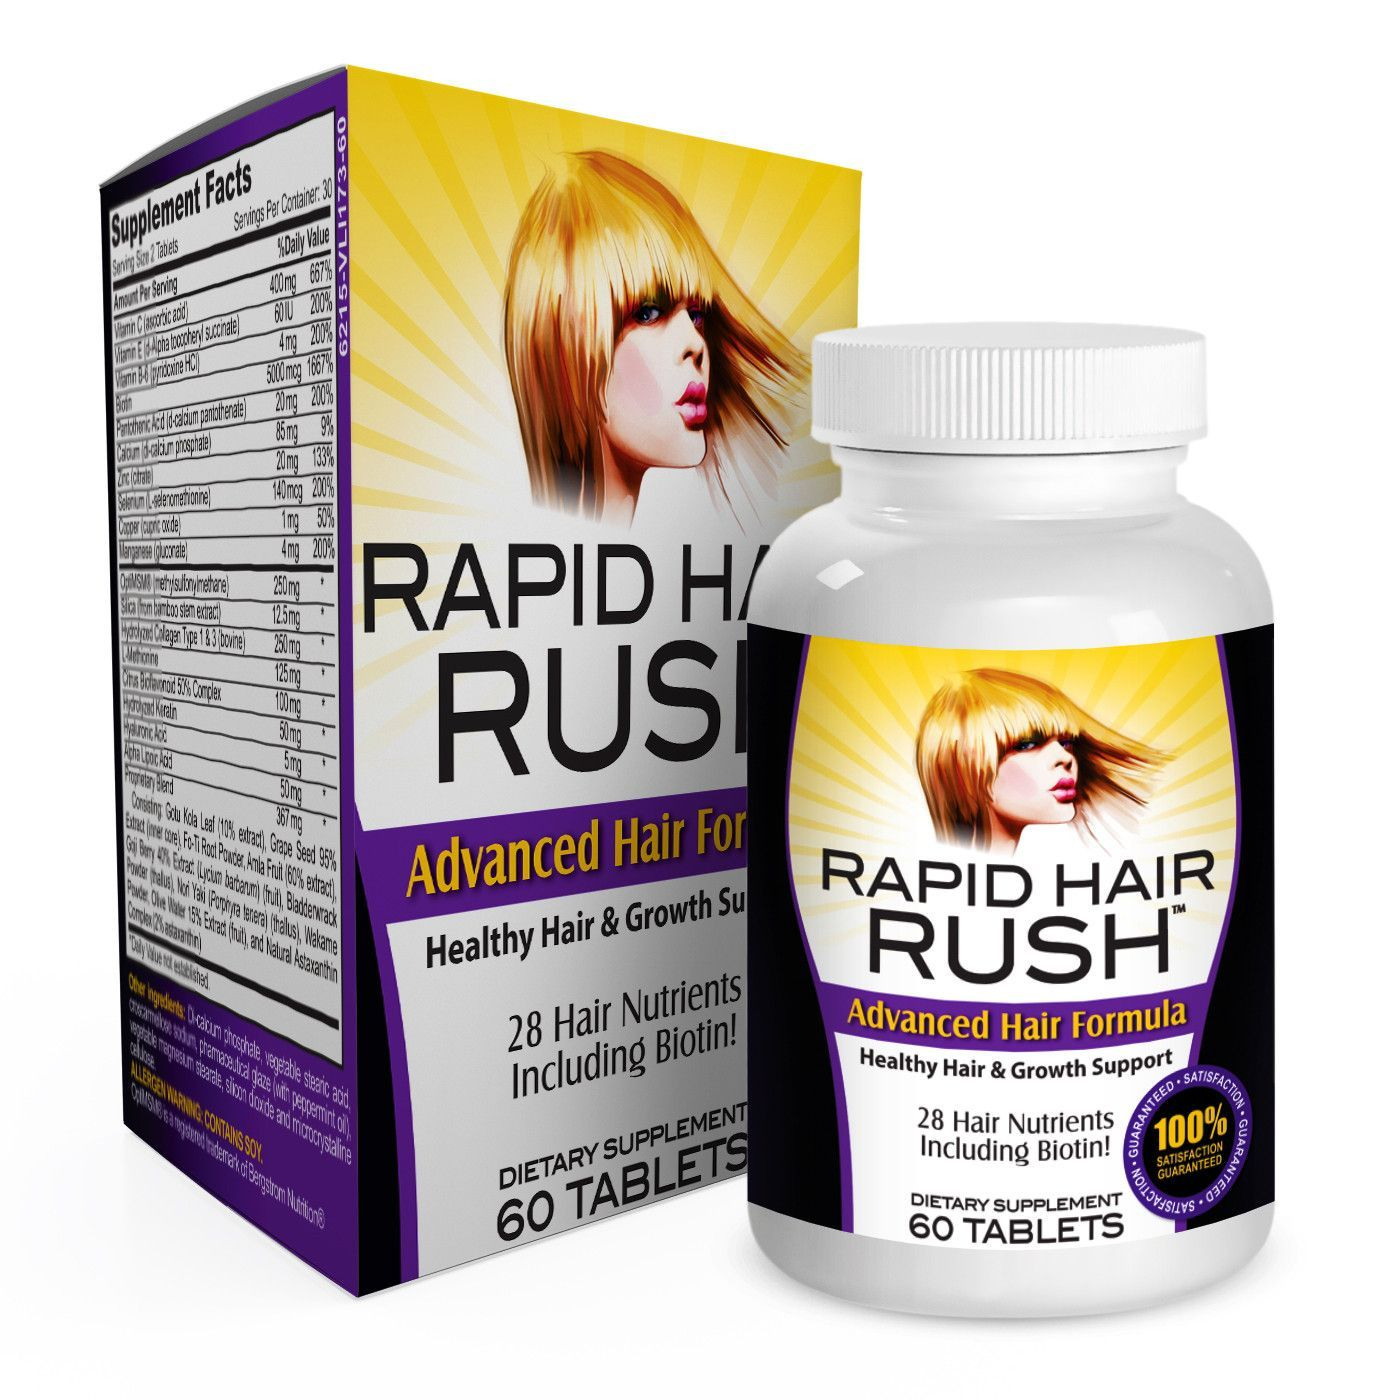 Rapid Hair Rush With 28 Healthy Hair Growth Vitamins Supplements Vitamins For Hair Growth Faster Hair Growth Vitamins Healthy Hair Growth